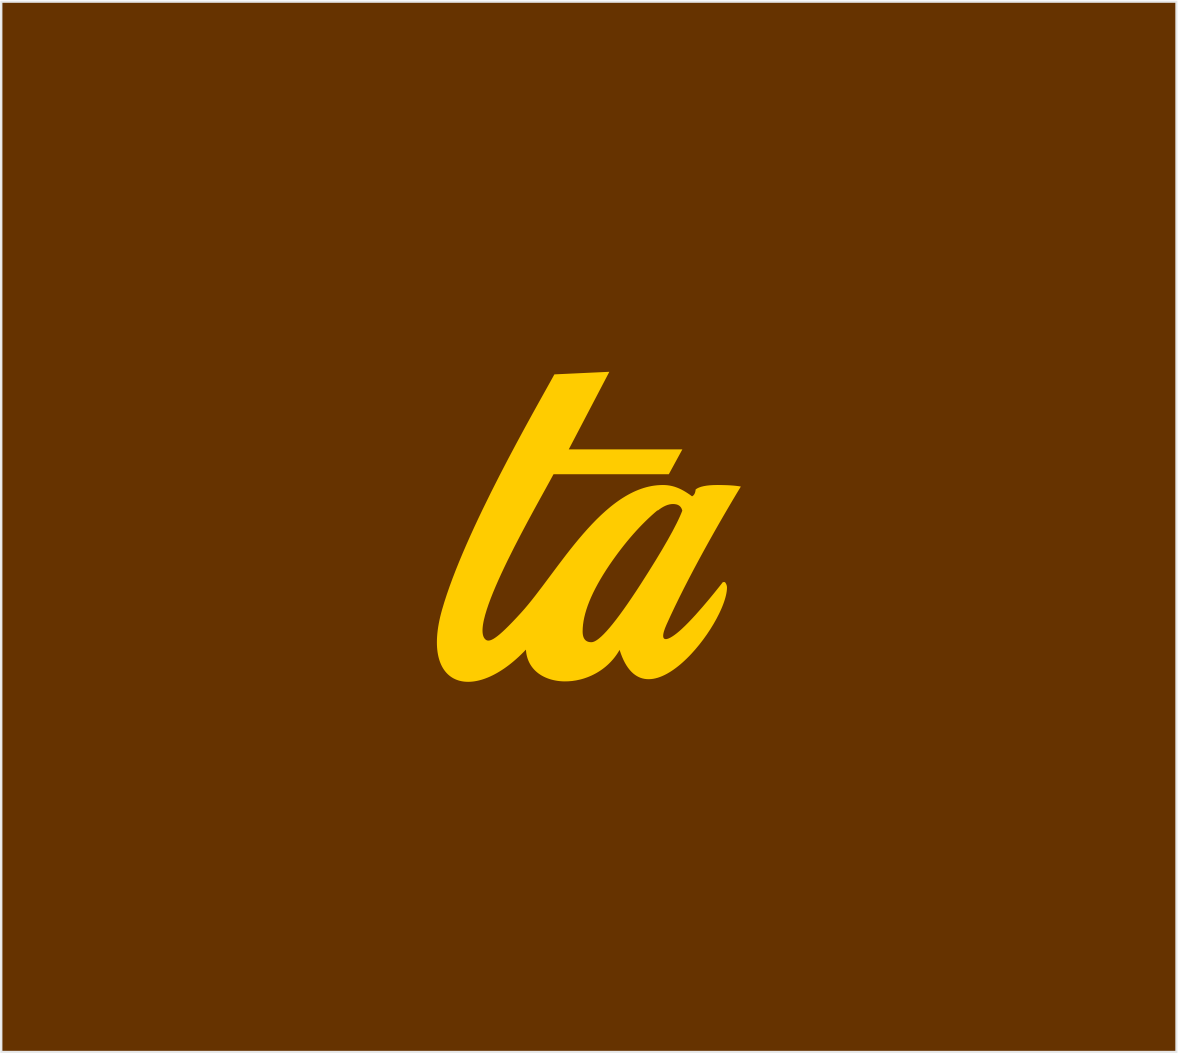 Logo Design by haidu - Entry No. 101 in the Logo Design Contest Imaginative Logo Design for TAYA.